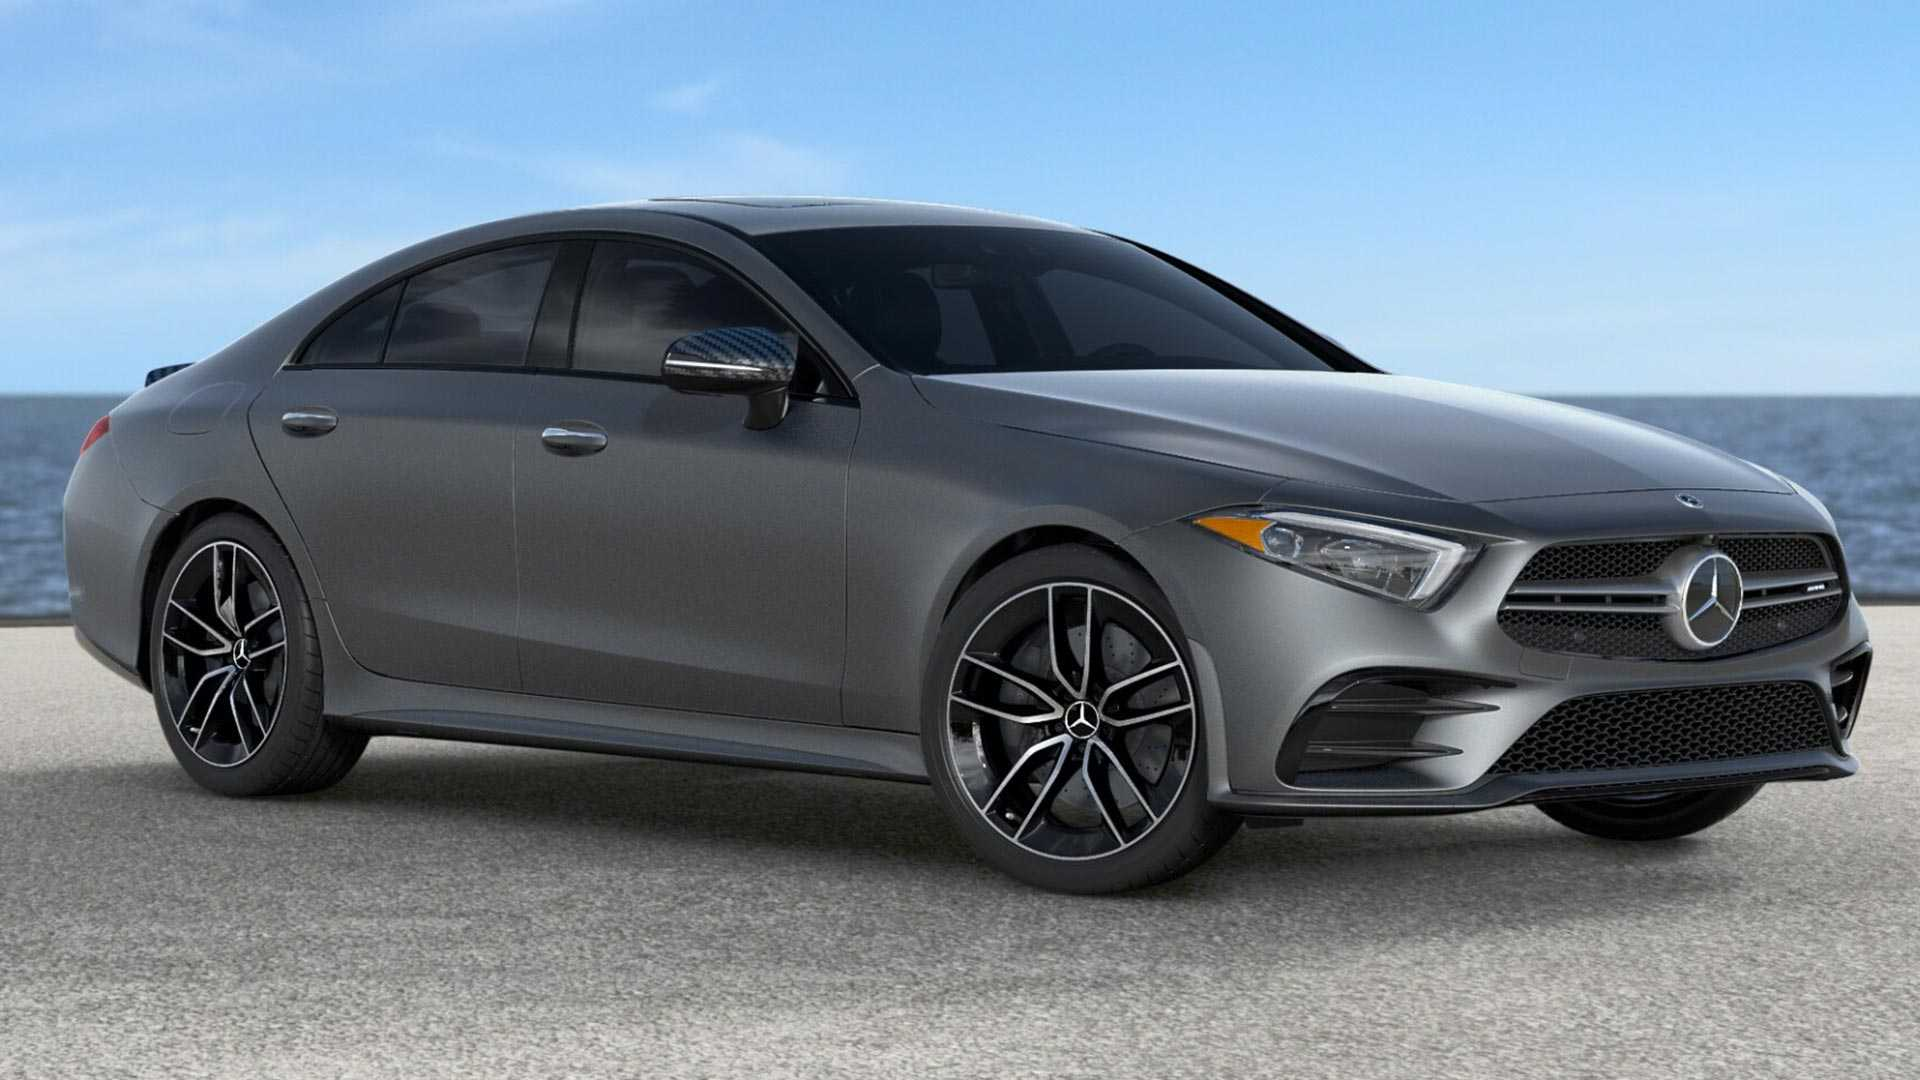 91 The Best 2019 Mercedes Cls Class Redesign And Review